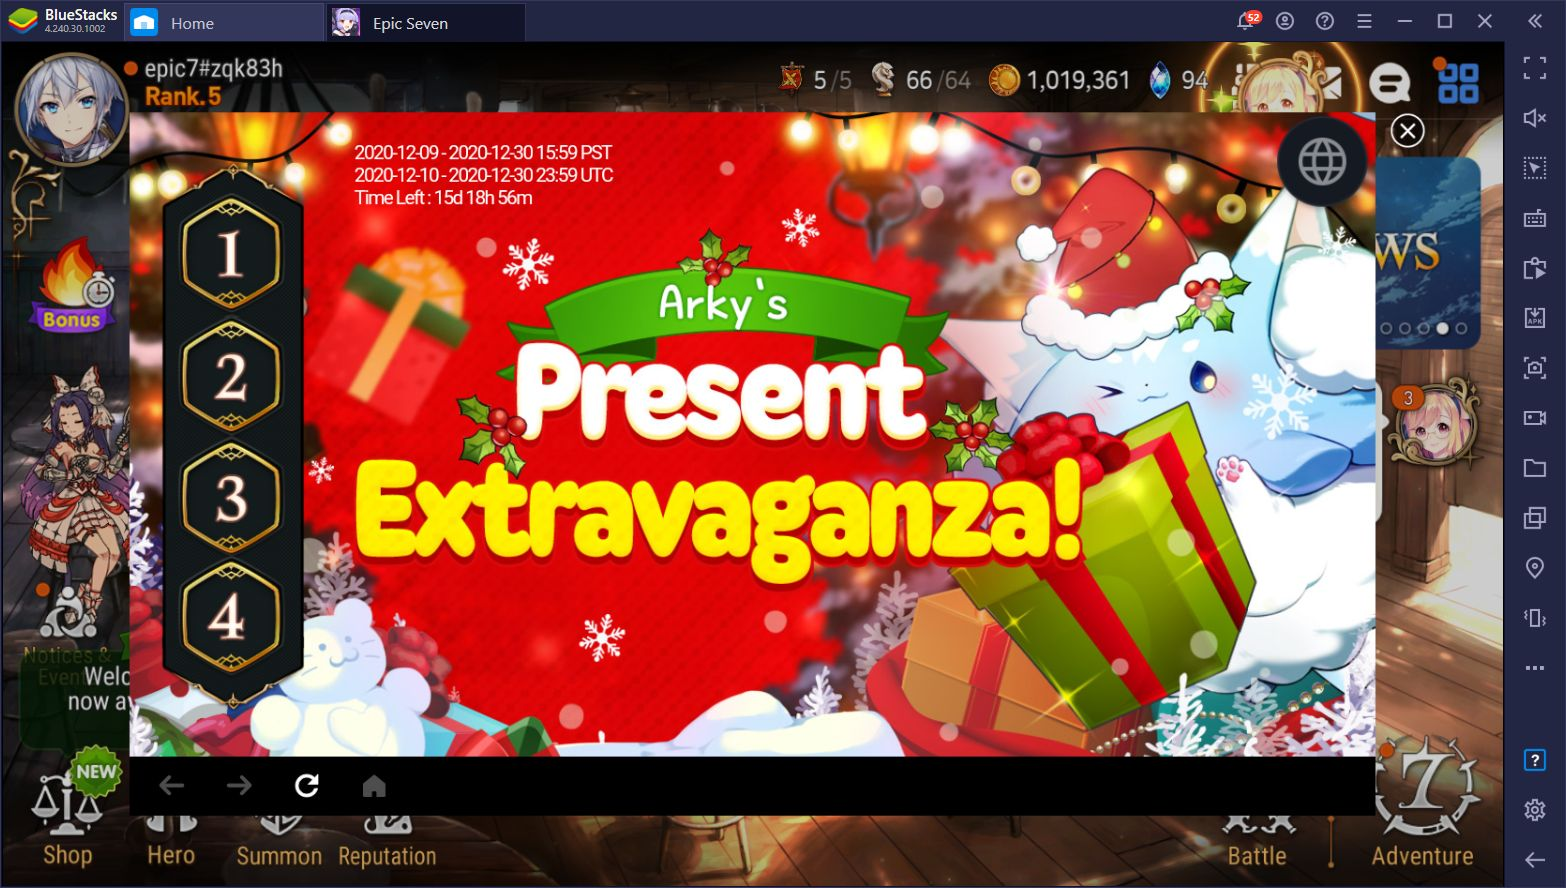 Top 10 Mobile Games That are Hosting Christmas Events in 2020